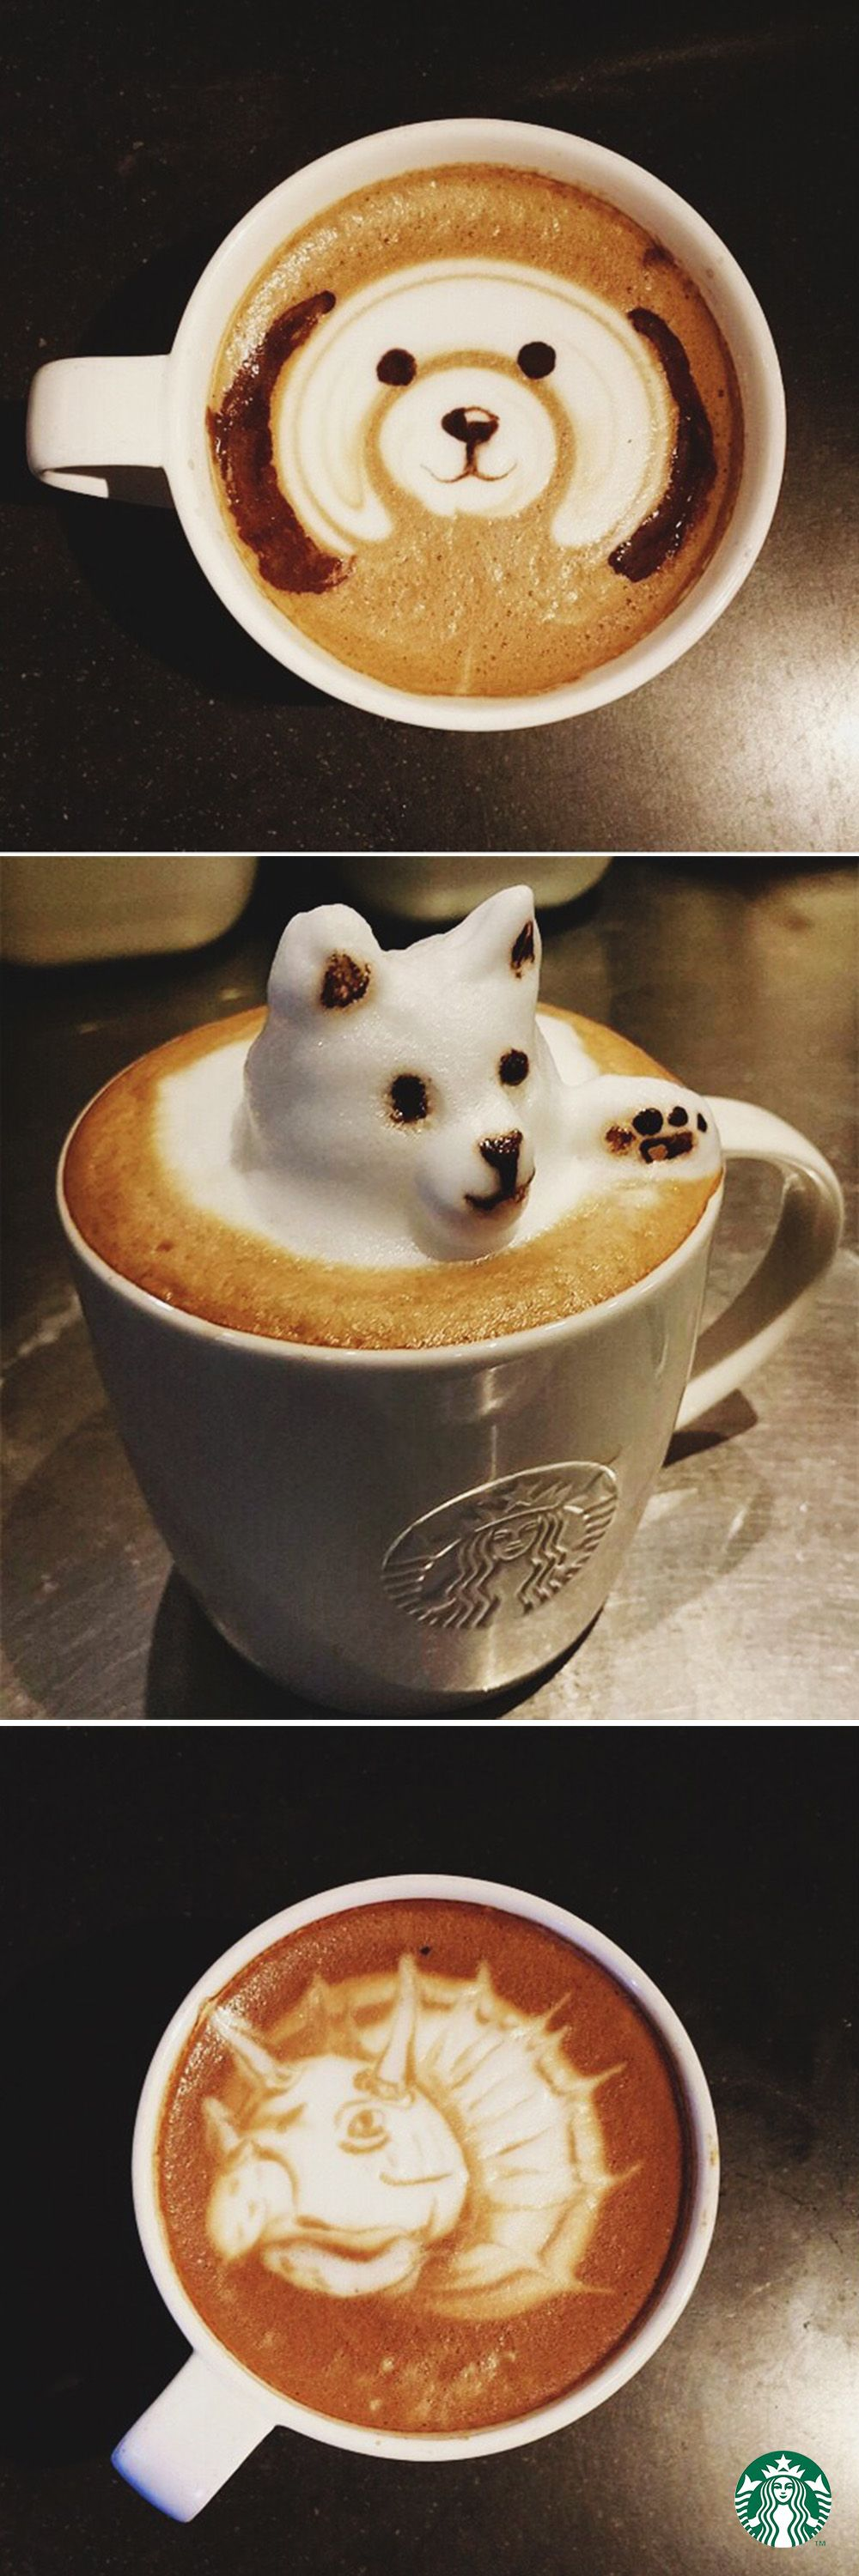 Ever Seen a Cat Made From Coffee? Latte art, Coffee art